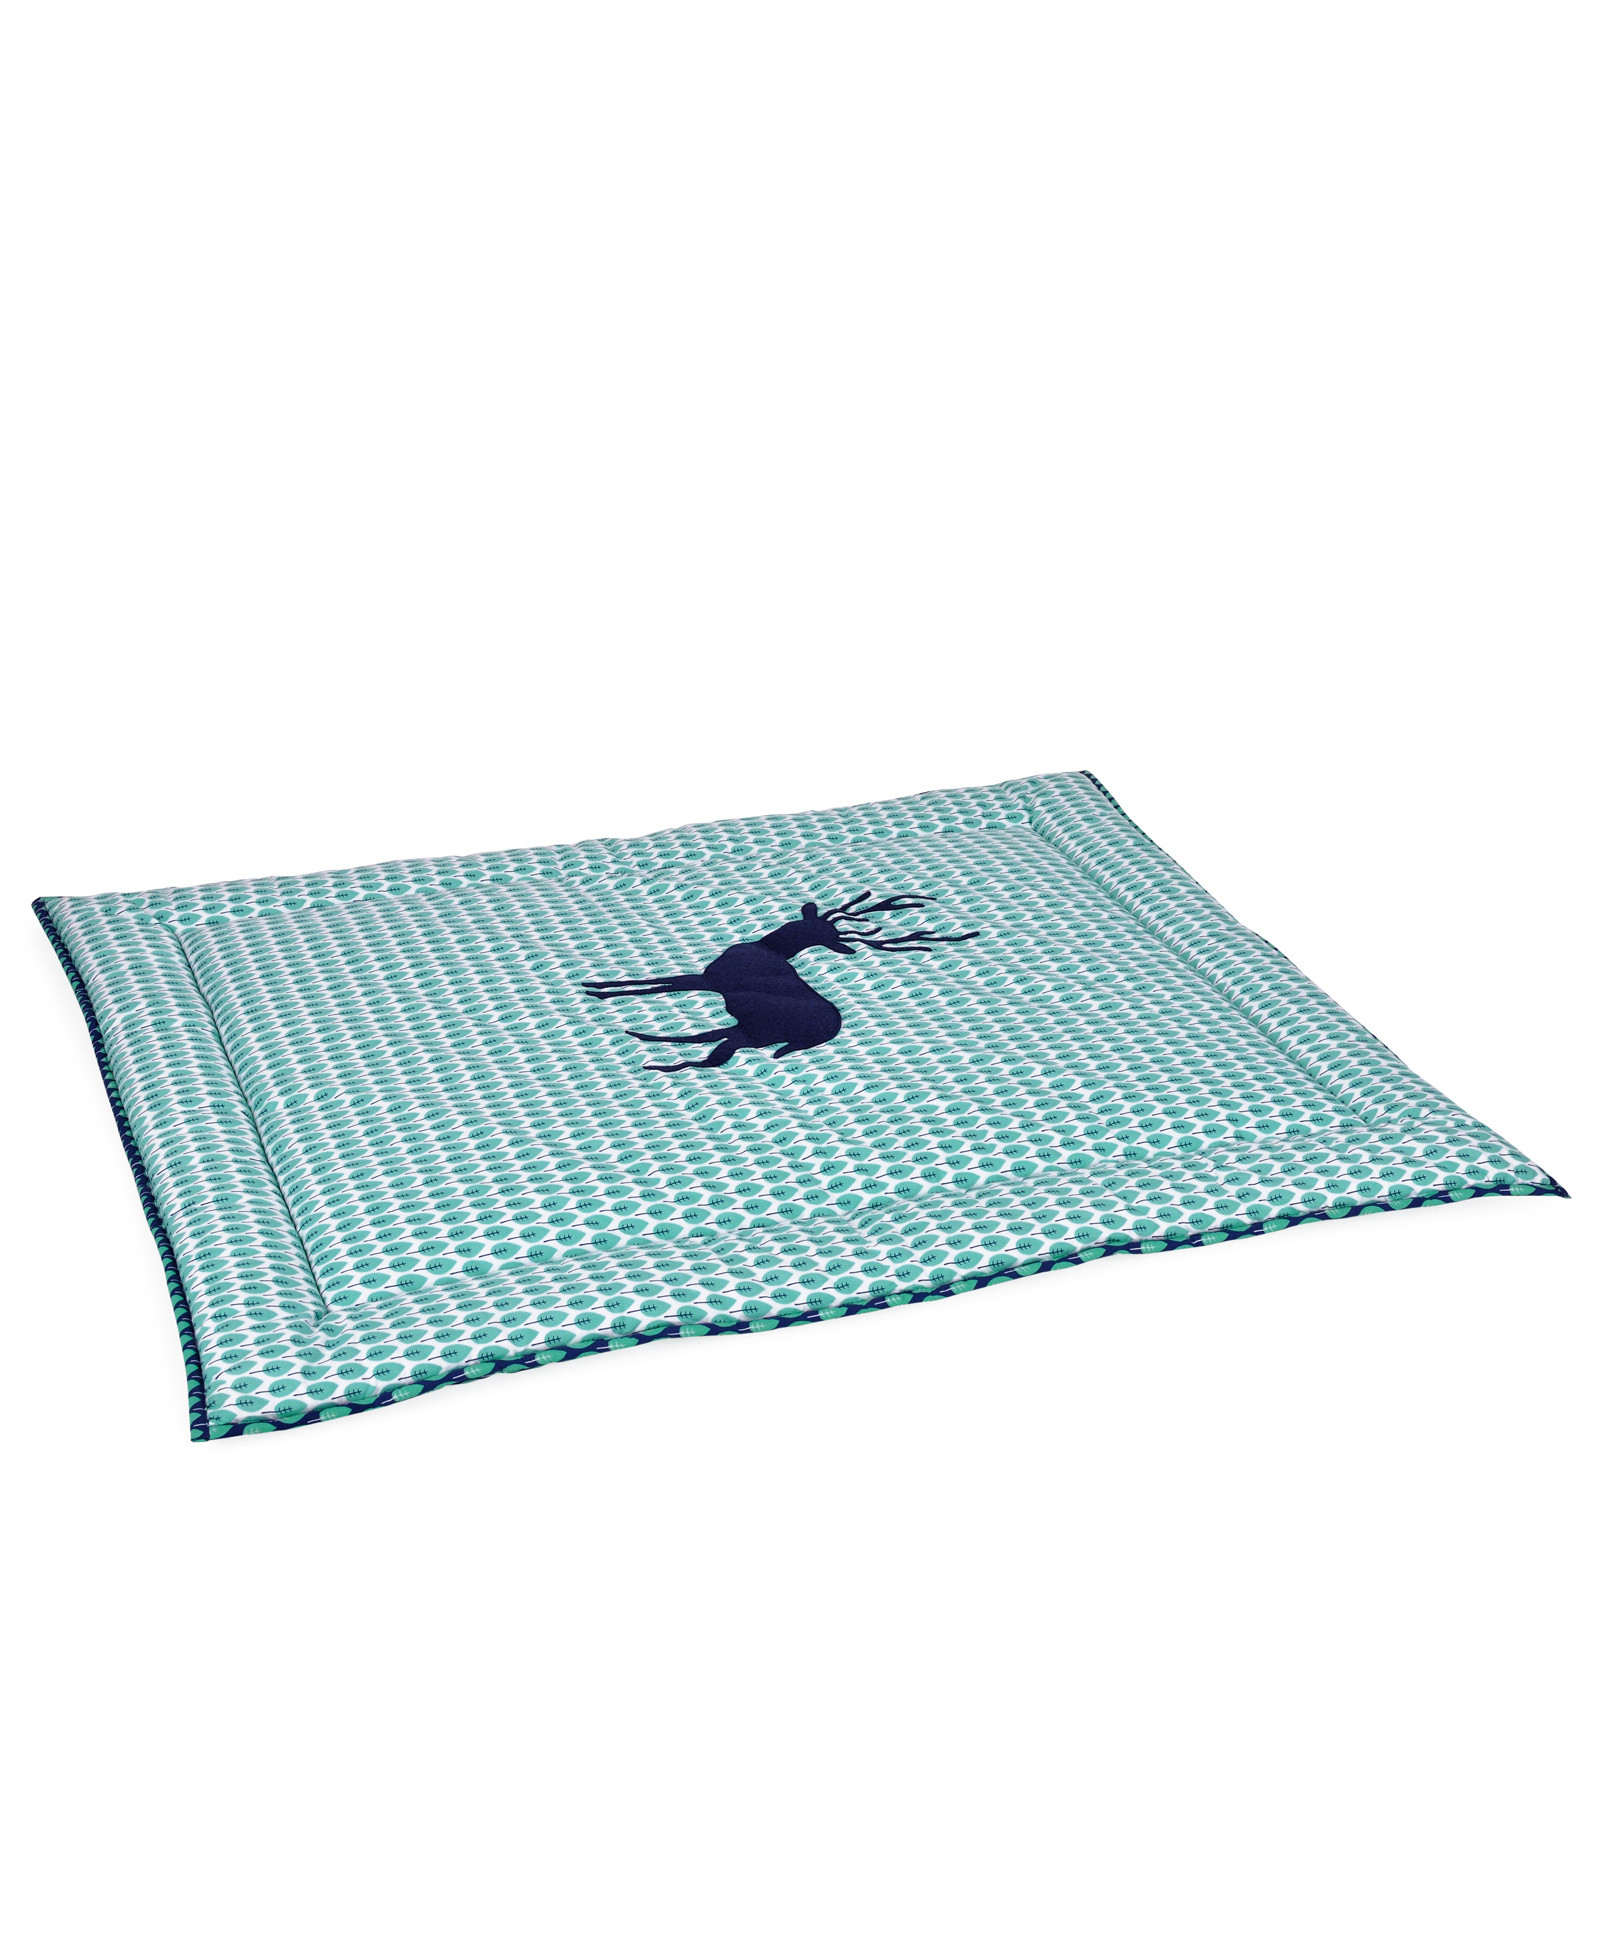 Taftan European Brand 5 layer Padded Play Mat Deer Blue